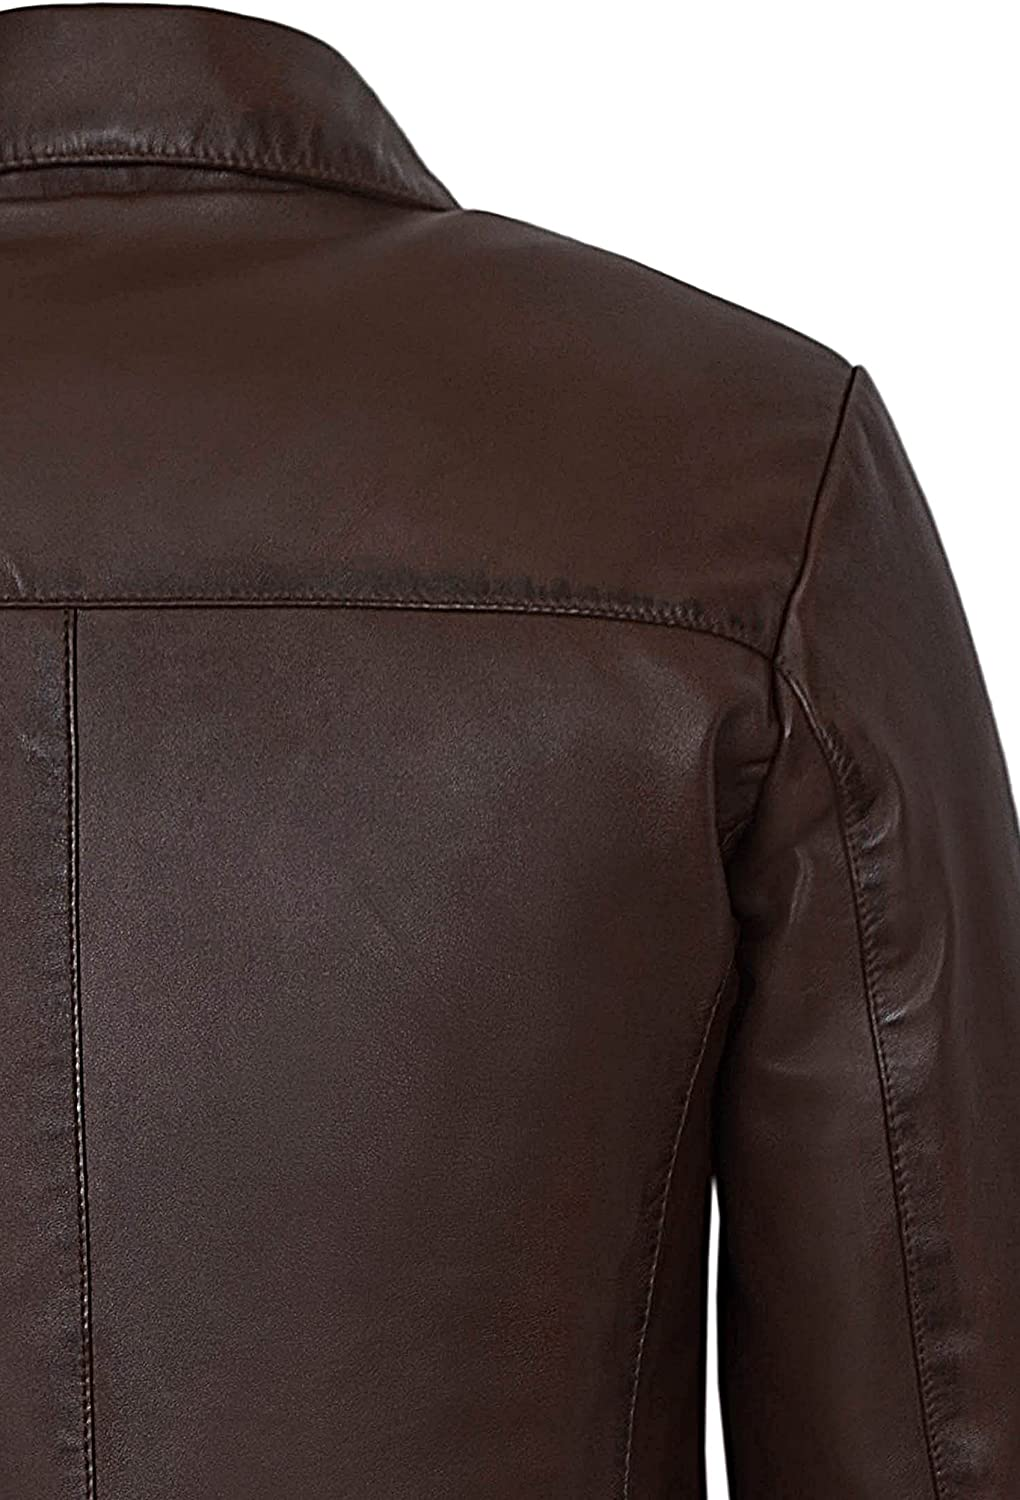 New Men 4 Buttons Classic Blazer Brown Knee Length Lambskin Leather Jacket 3476